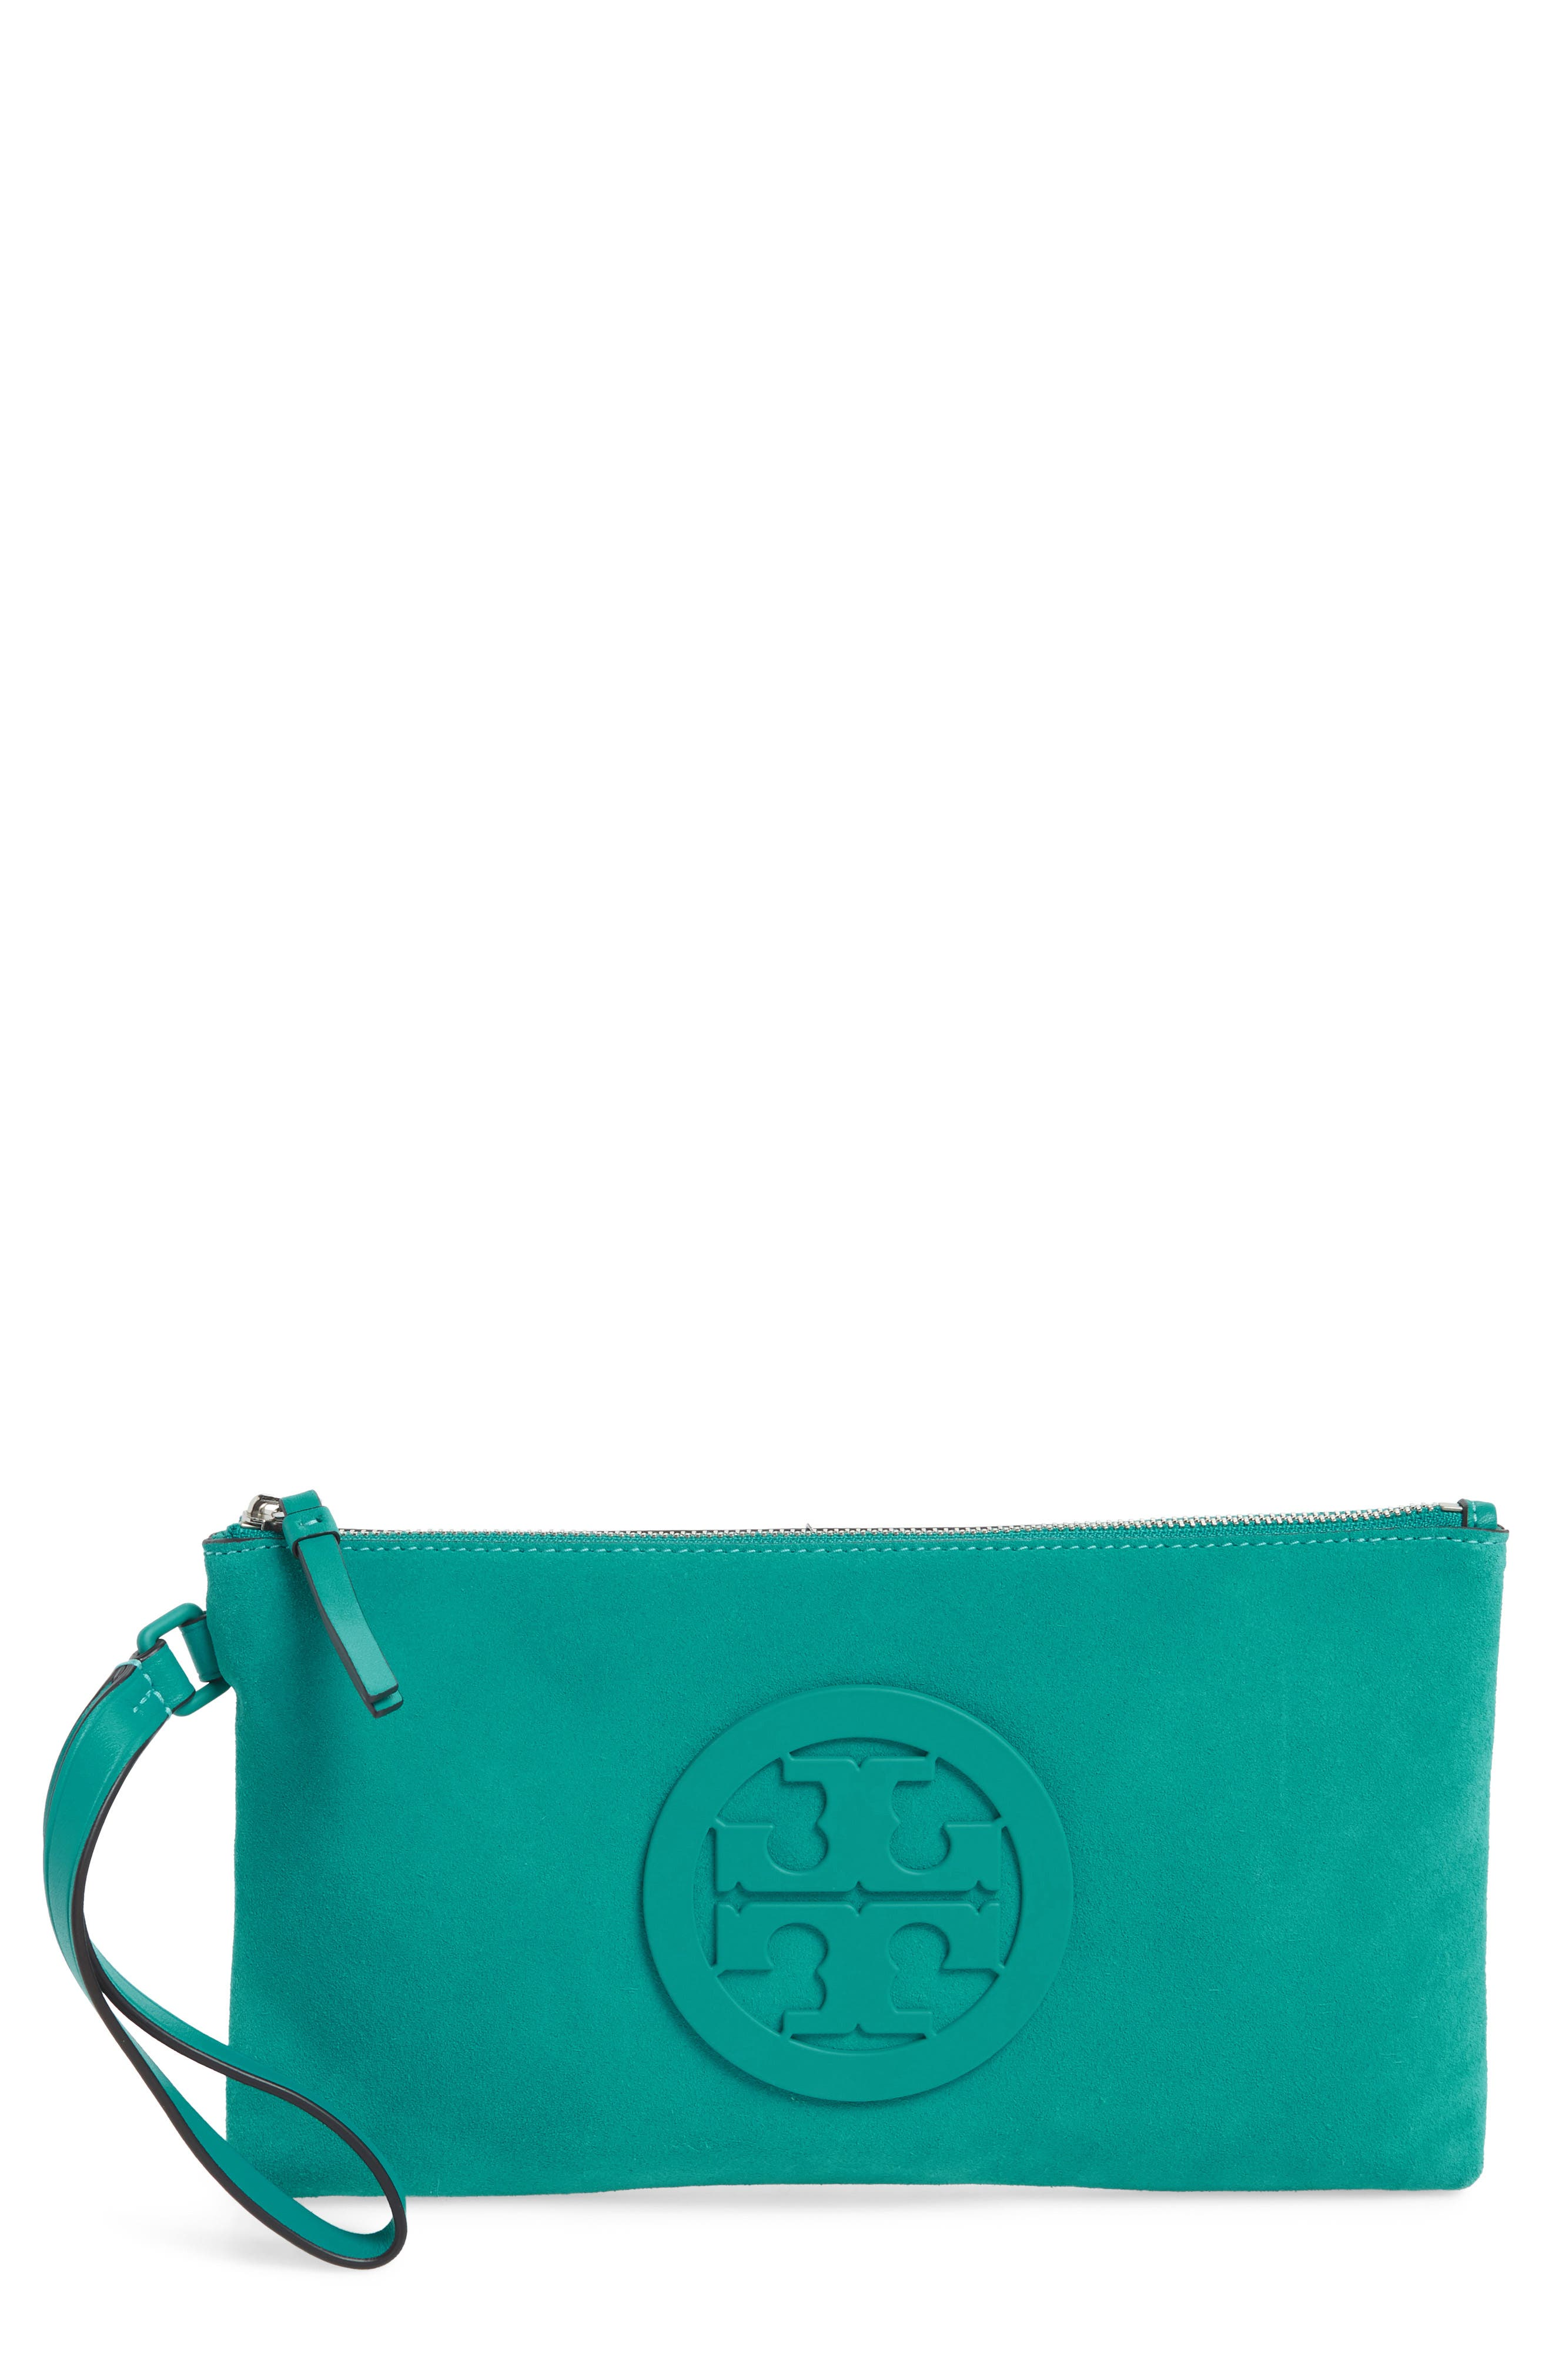 Charlie Suede Wristlet Clutch,                         Main,                         color, Ribbon Turquoise